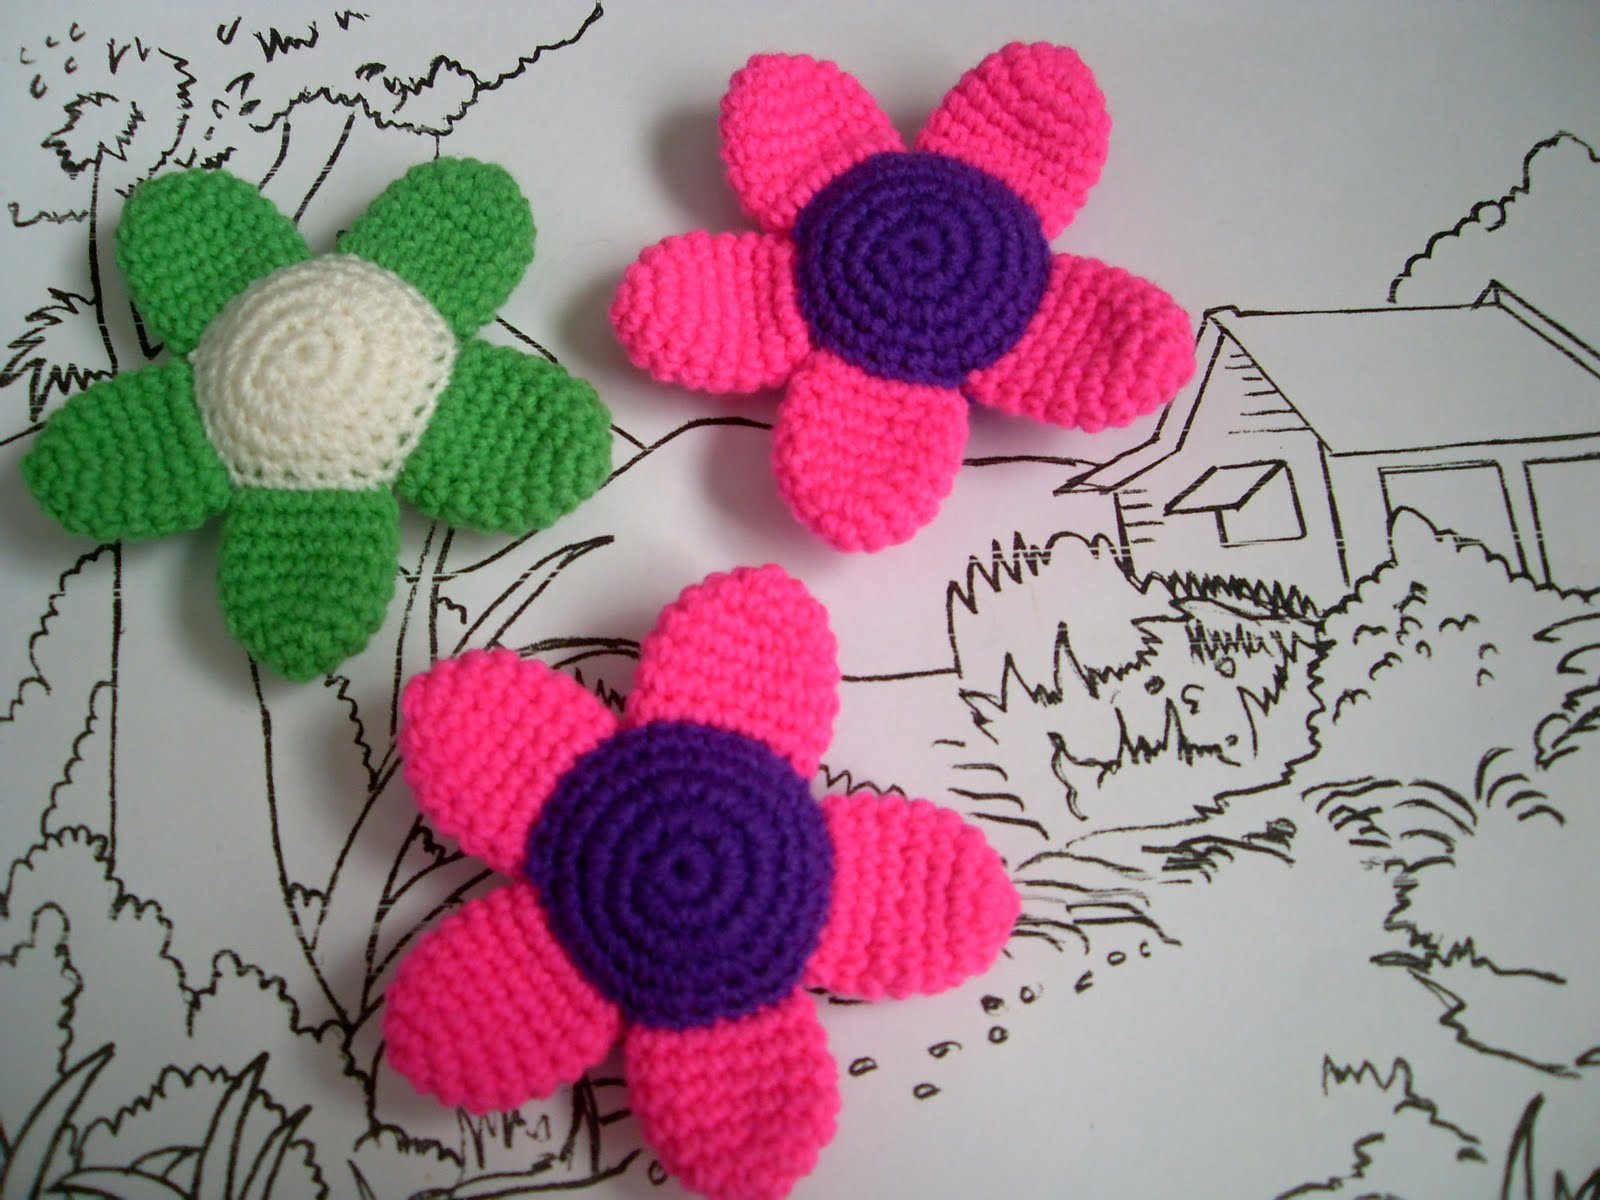 Amigurumi Flower Pattern Free : Crochet.is.Fun: Free pattern: flower amigurumi